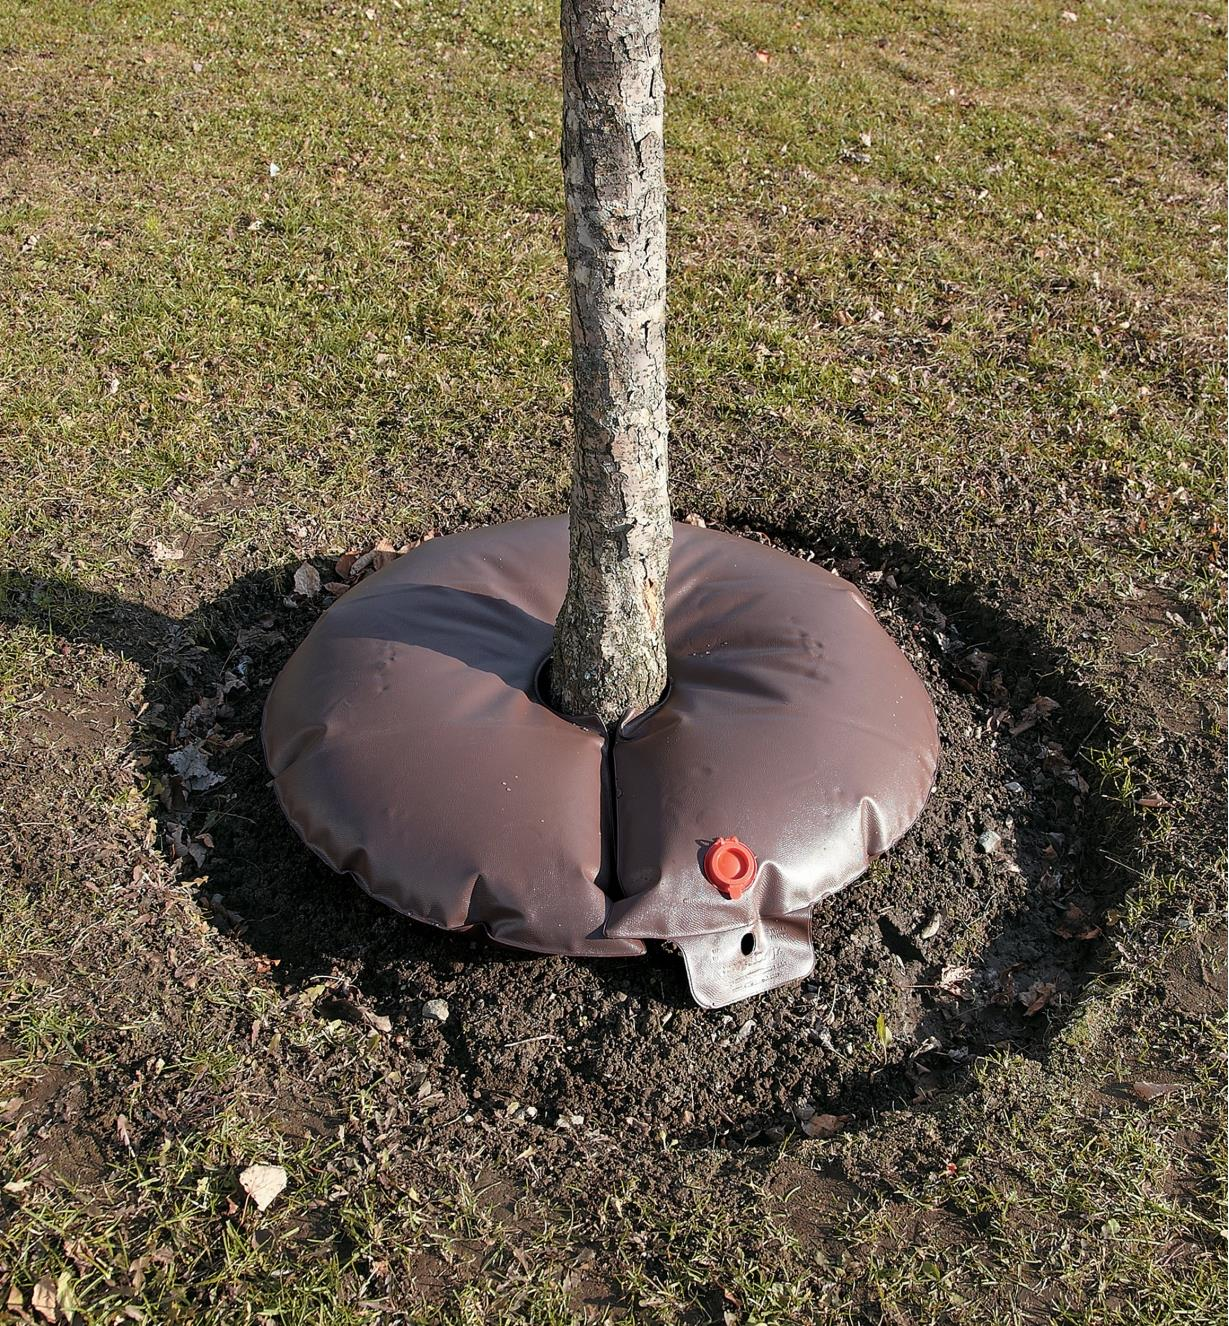 Tree Irrigator placed around the base of a young tree